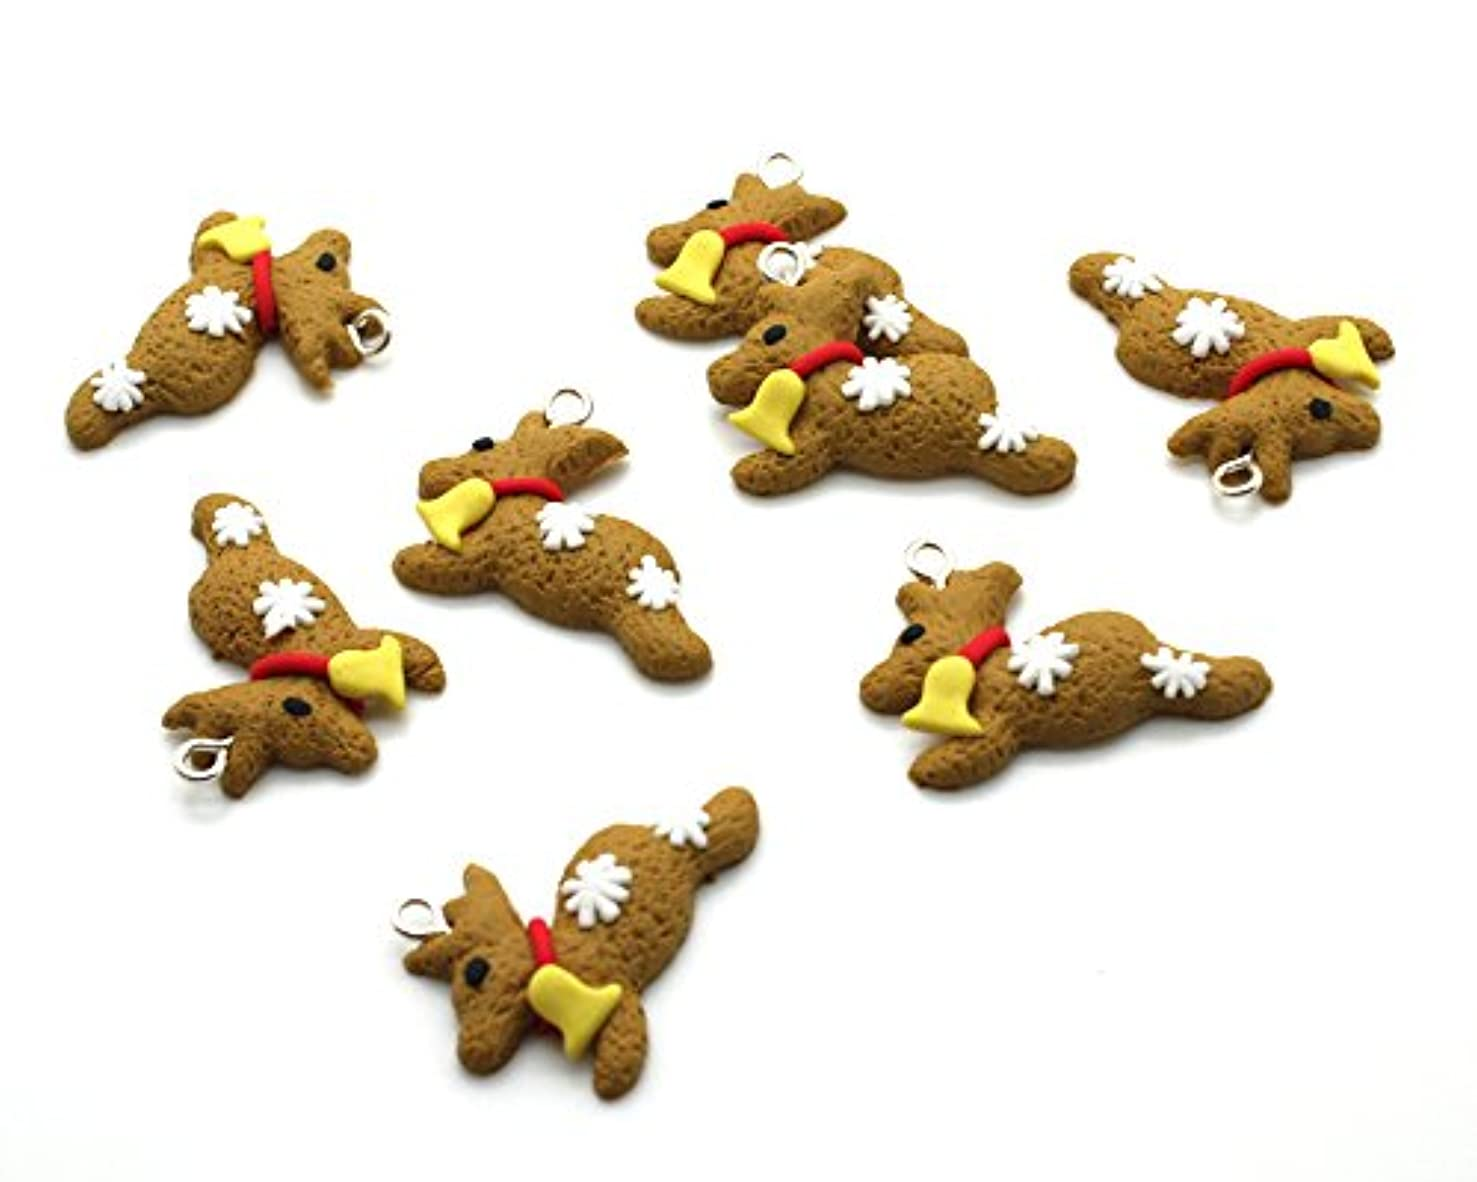 Beads Unlimited Polymer Clay Christmas Gingerbread Reindeer Multi Colour 30x22x6mm-Pack of 10, Mixed